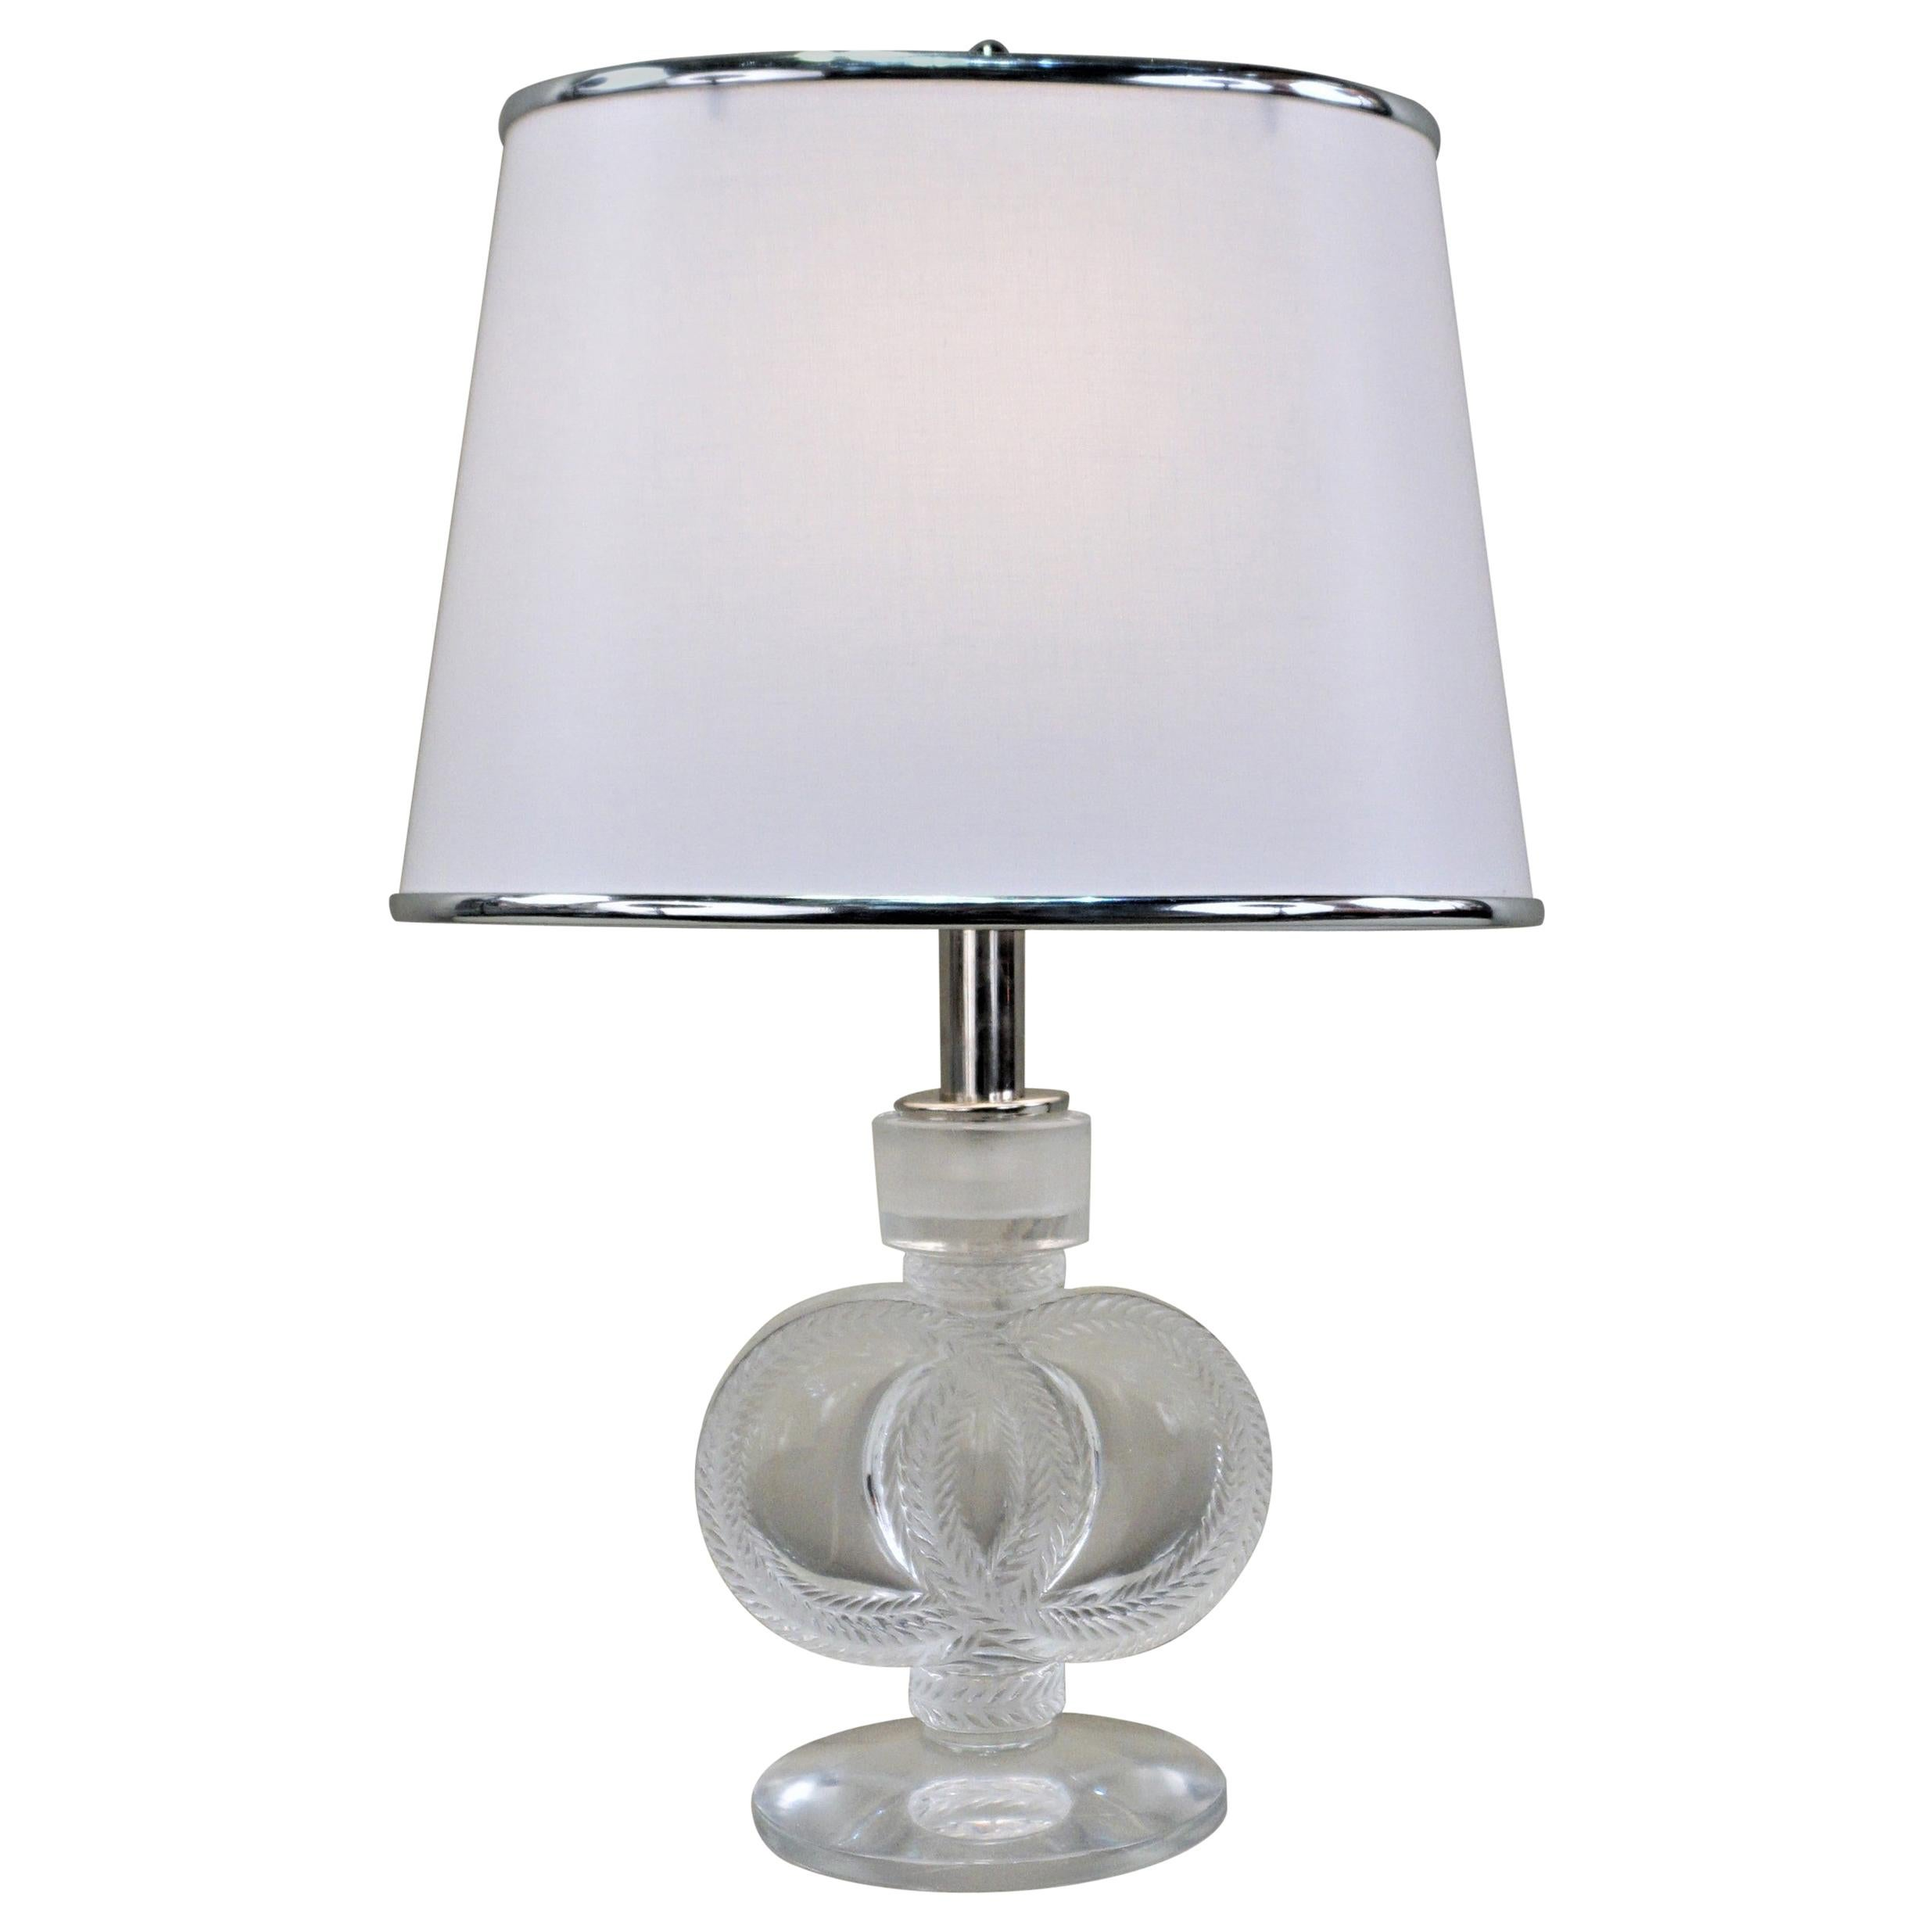 Lalique Crystal 1930s Candlestick Table Lamp